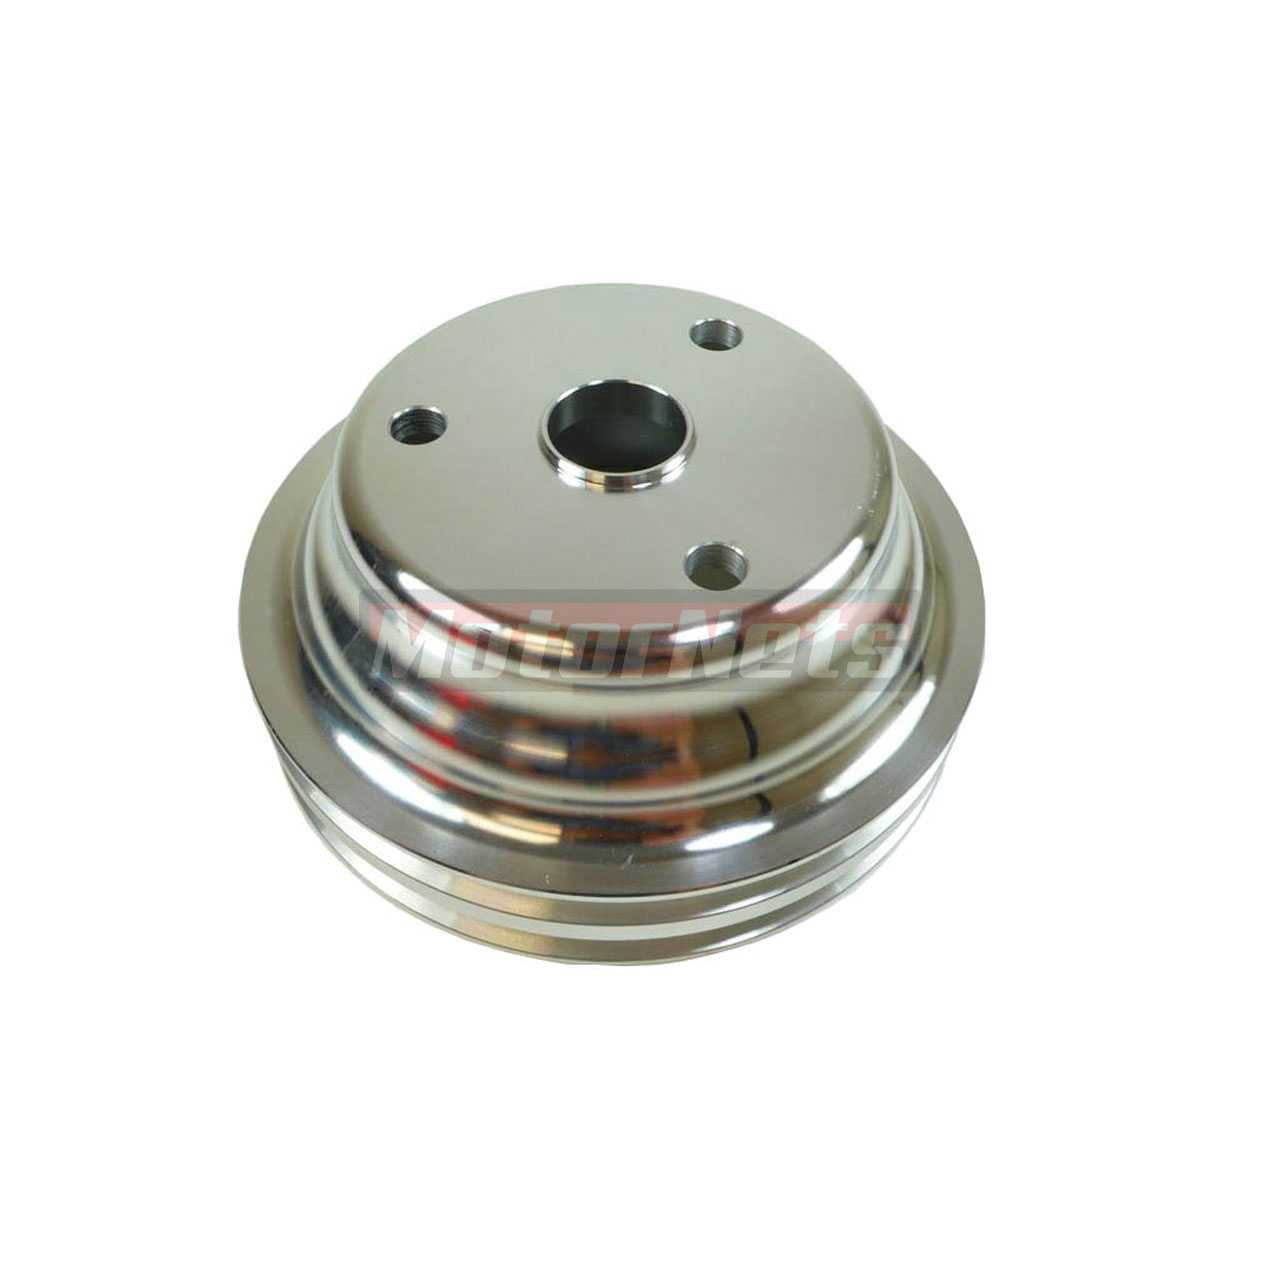 Satin Aluminum SBC Chevy 283-350 Crankshaft Pulley Long